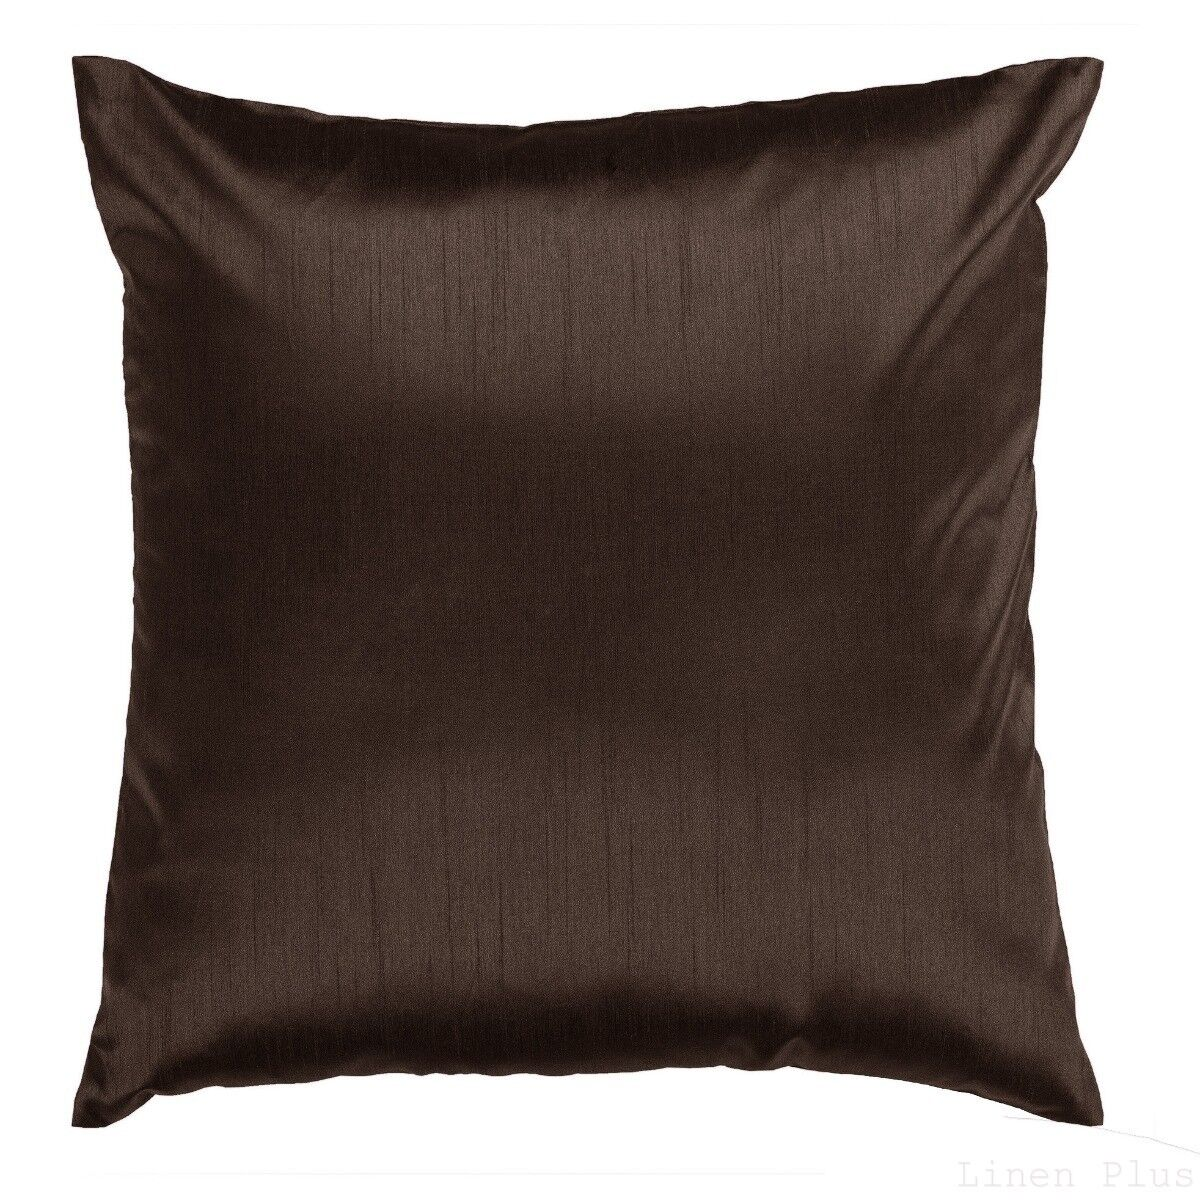 Brown Cover Case Decorative Pillow Zippered Closure 18″ x 18″ 2 Piece Bedding